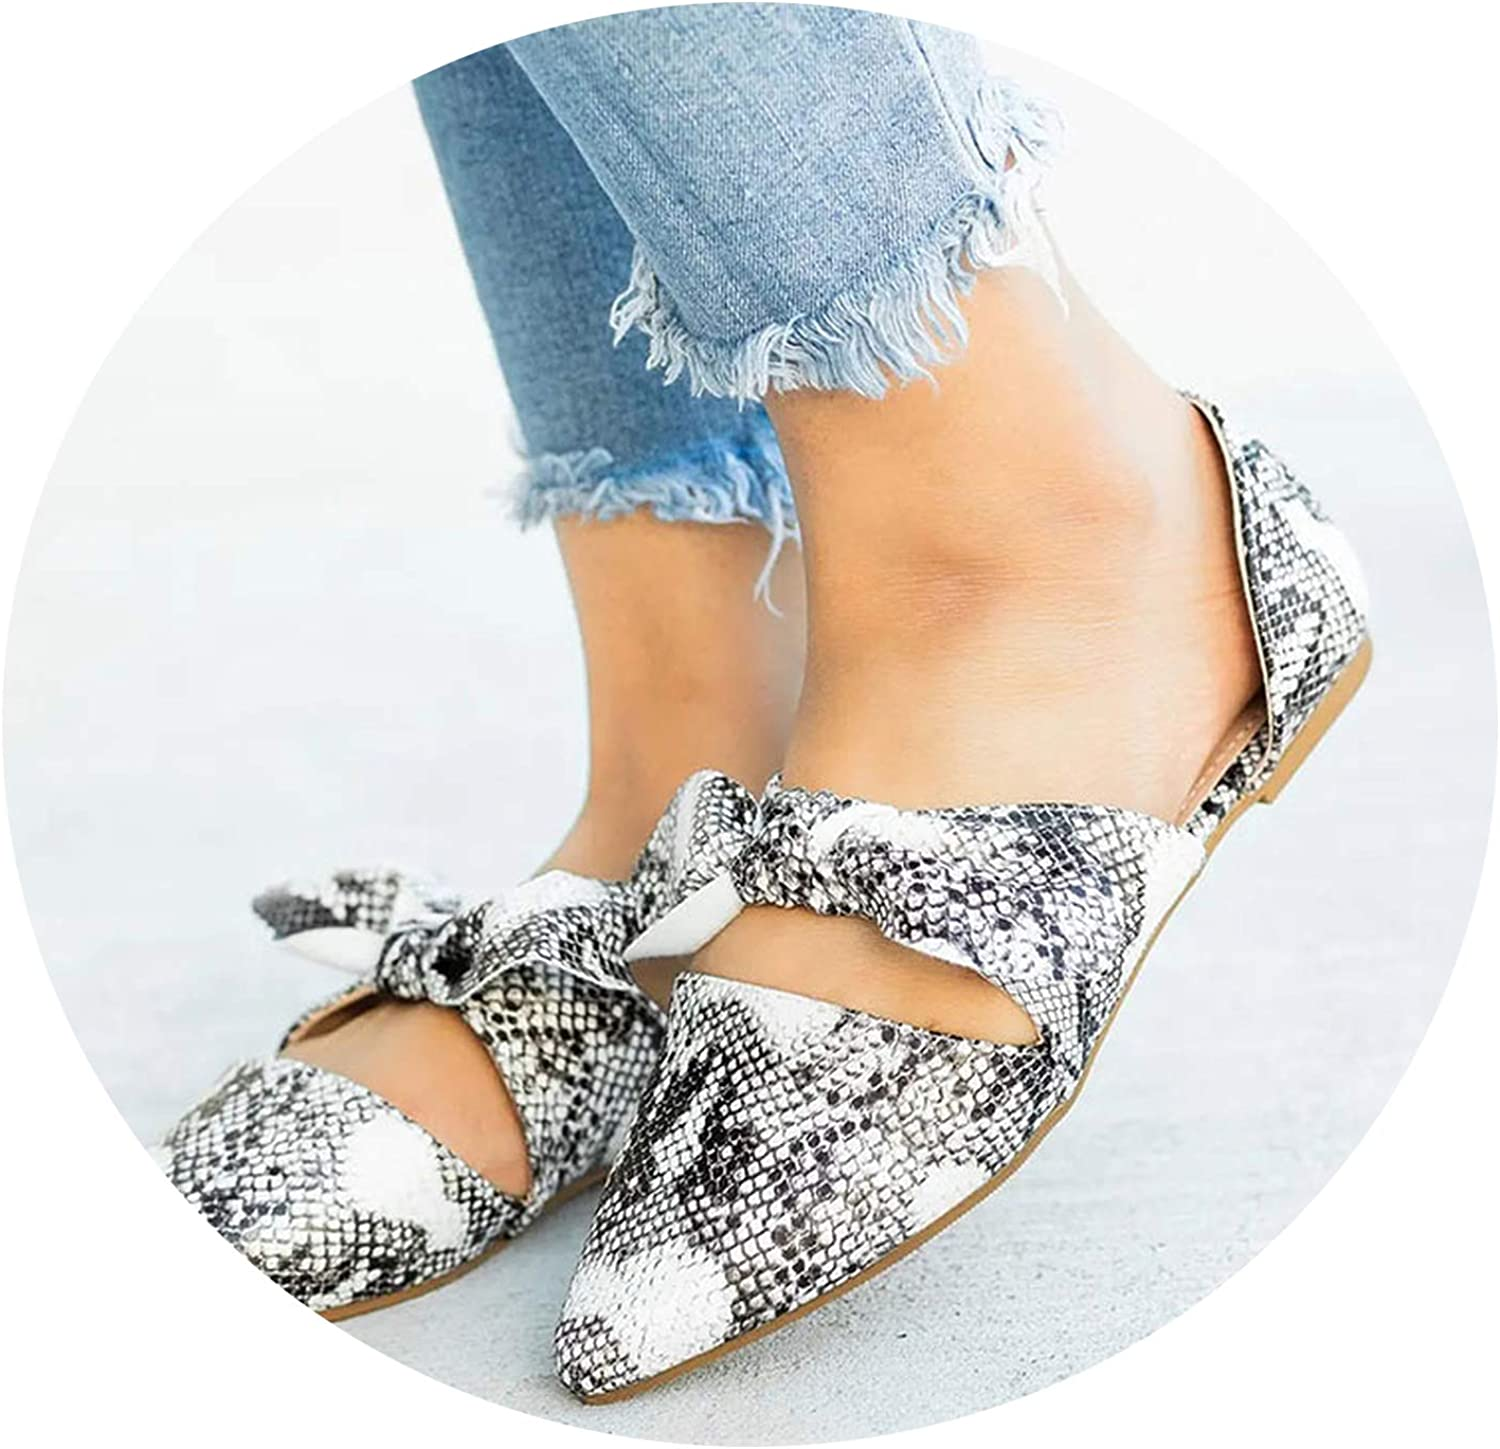 Women's Sandals Flat Summer Fashion Wedge shoes's Buckle Casual,Snake,10